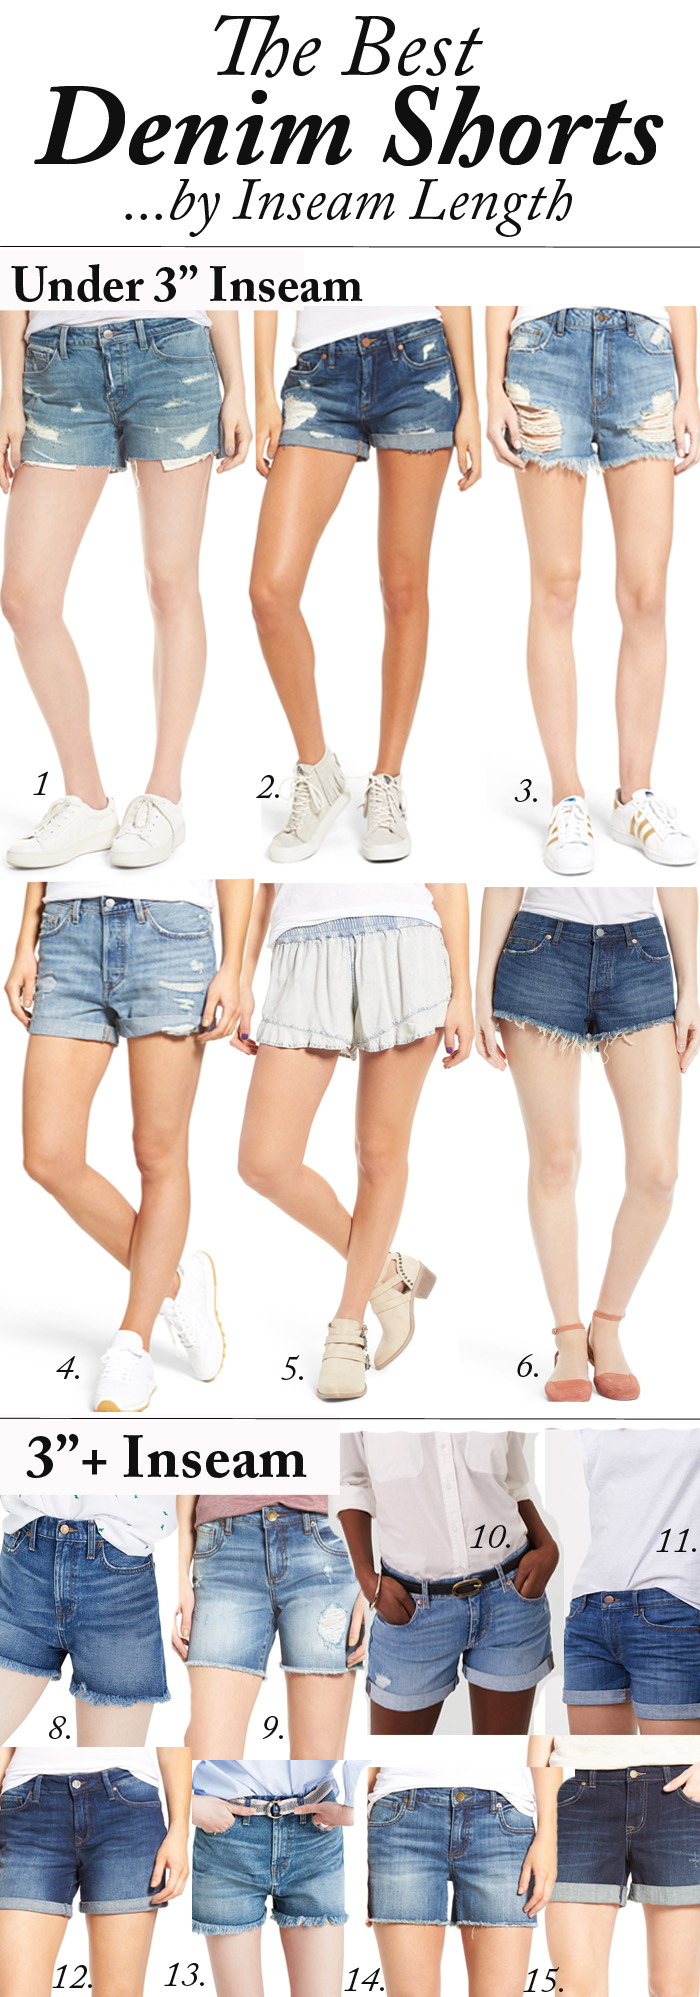 Best Denim Shorts UNDER $100!